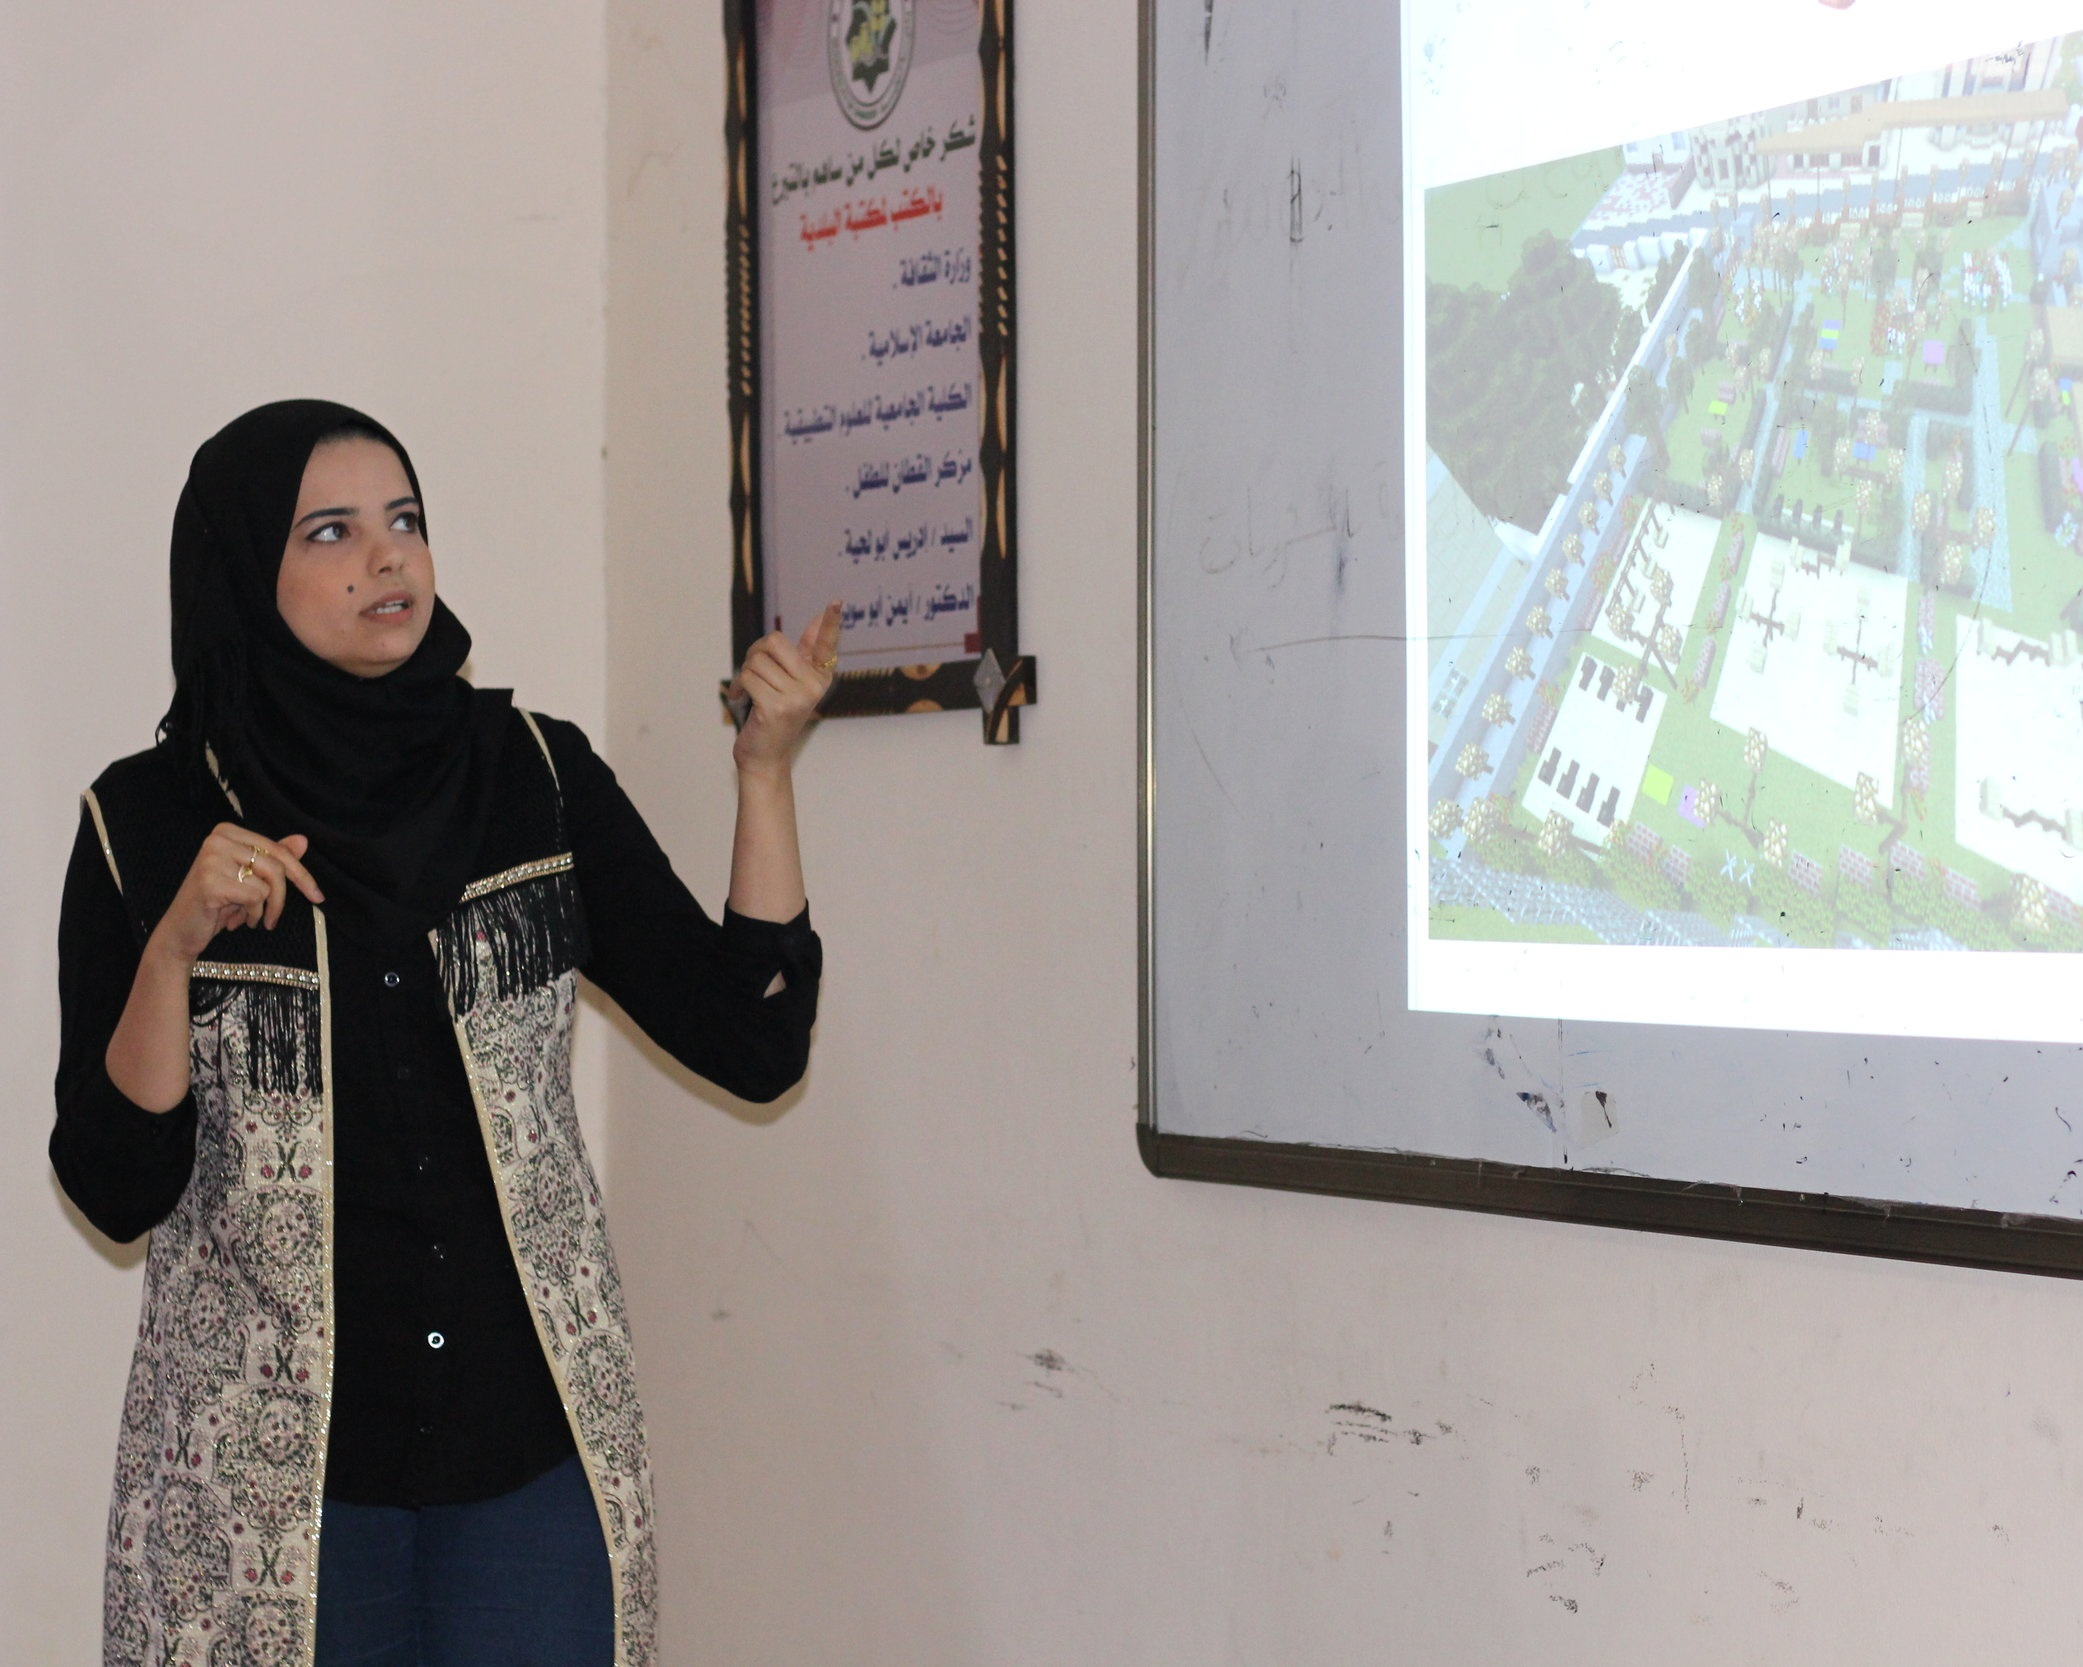 Presentations showcased ideas from each of the Al-Zawayada workshop teams. Credit: UN-Habitat